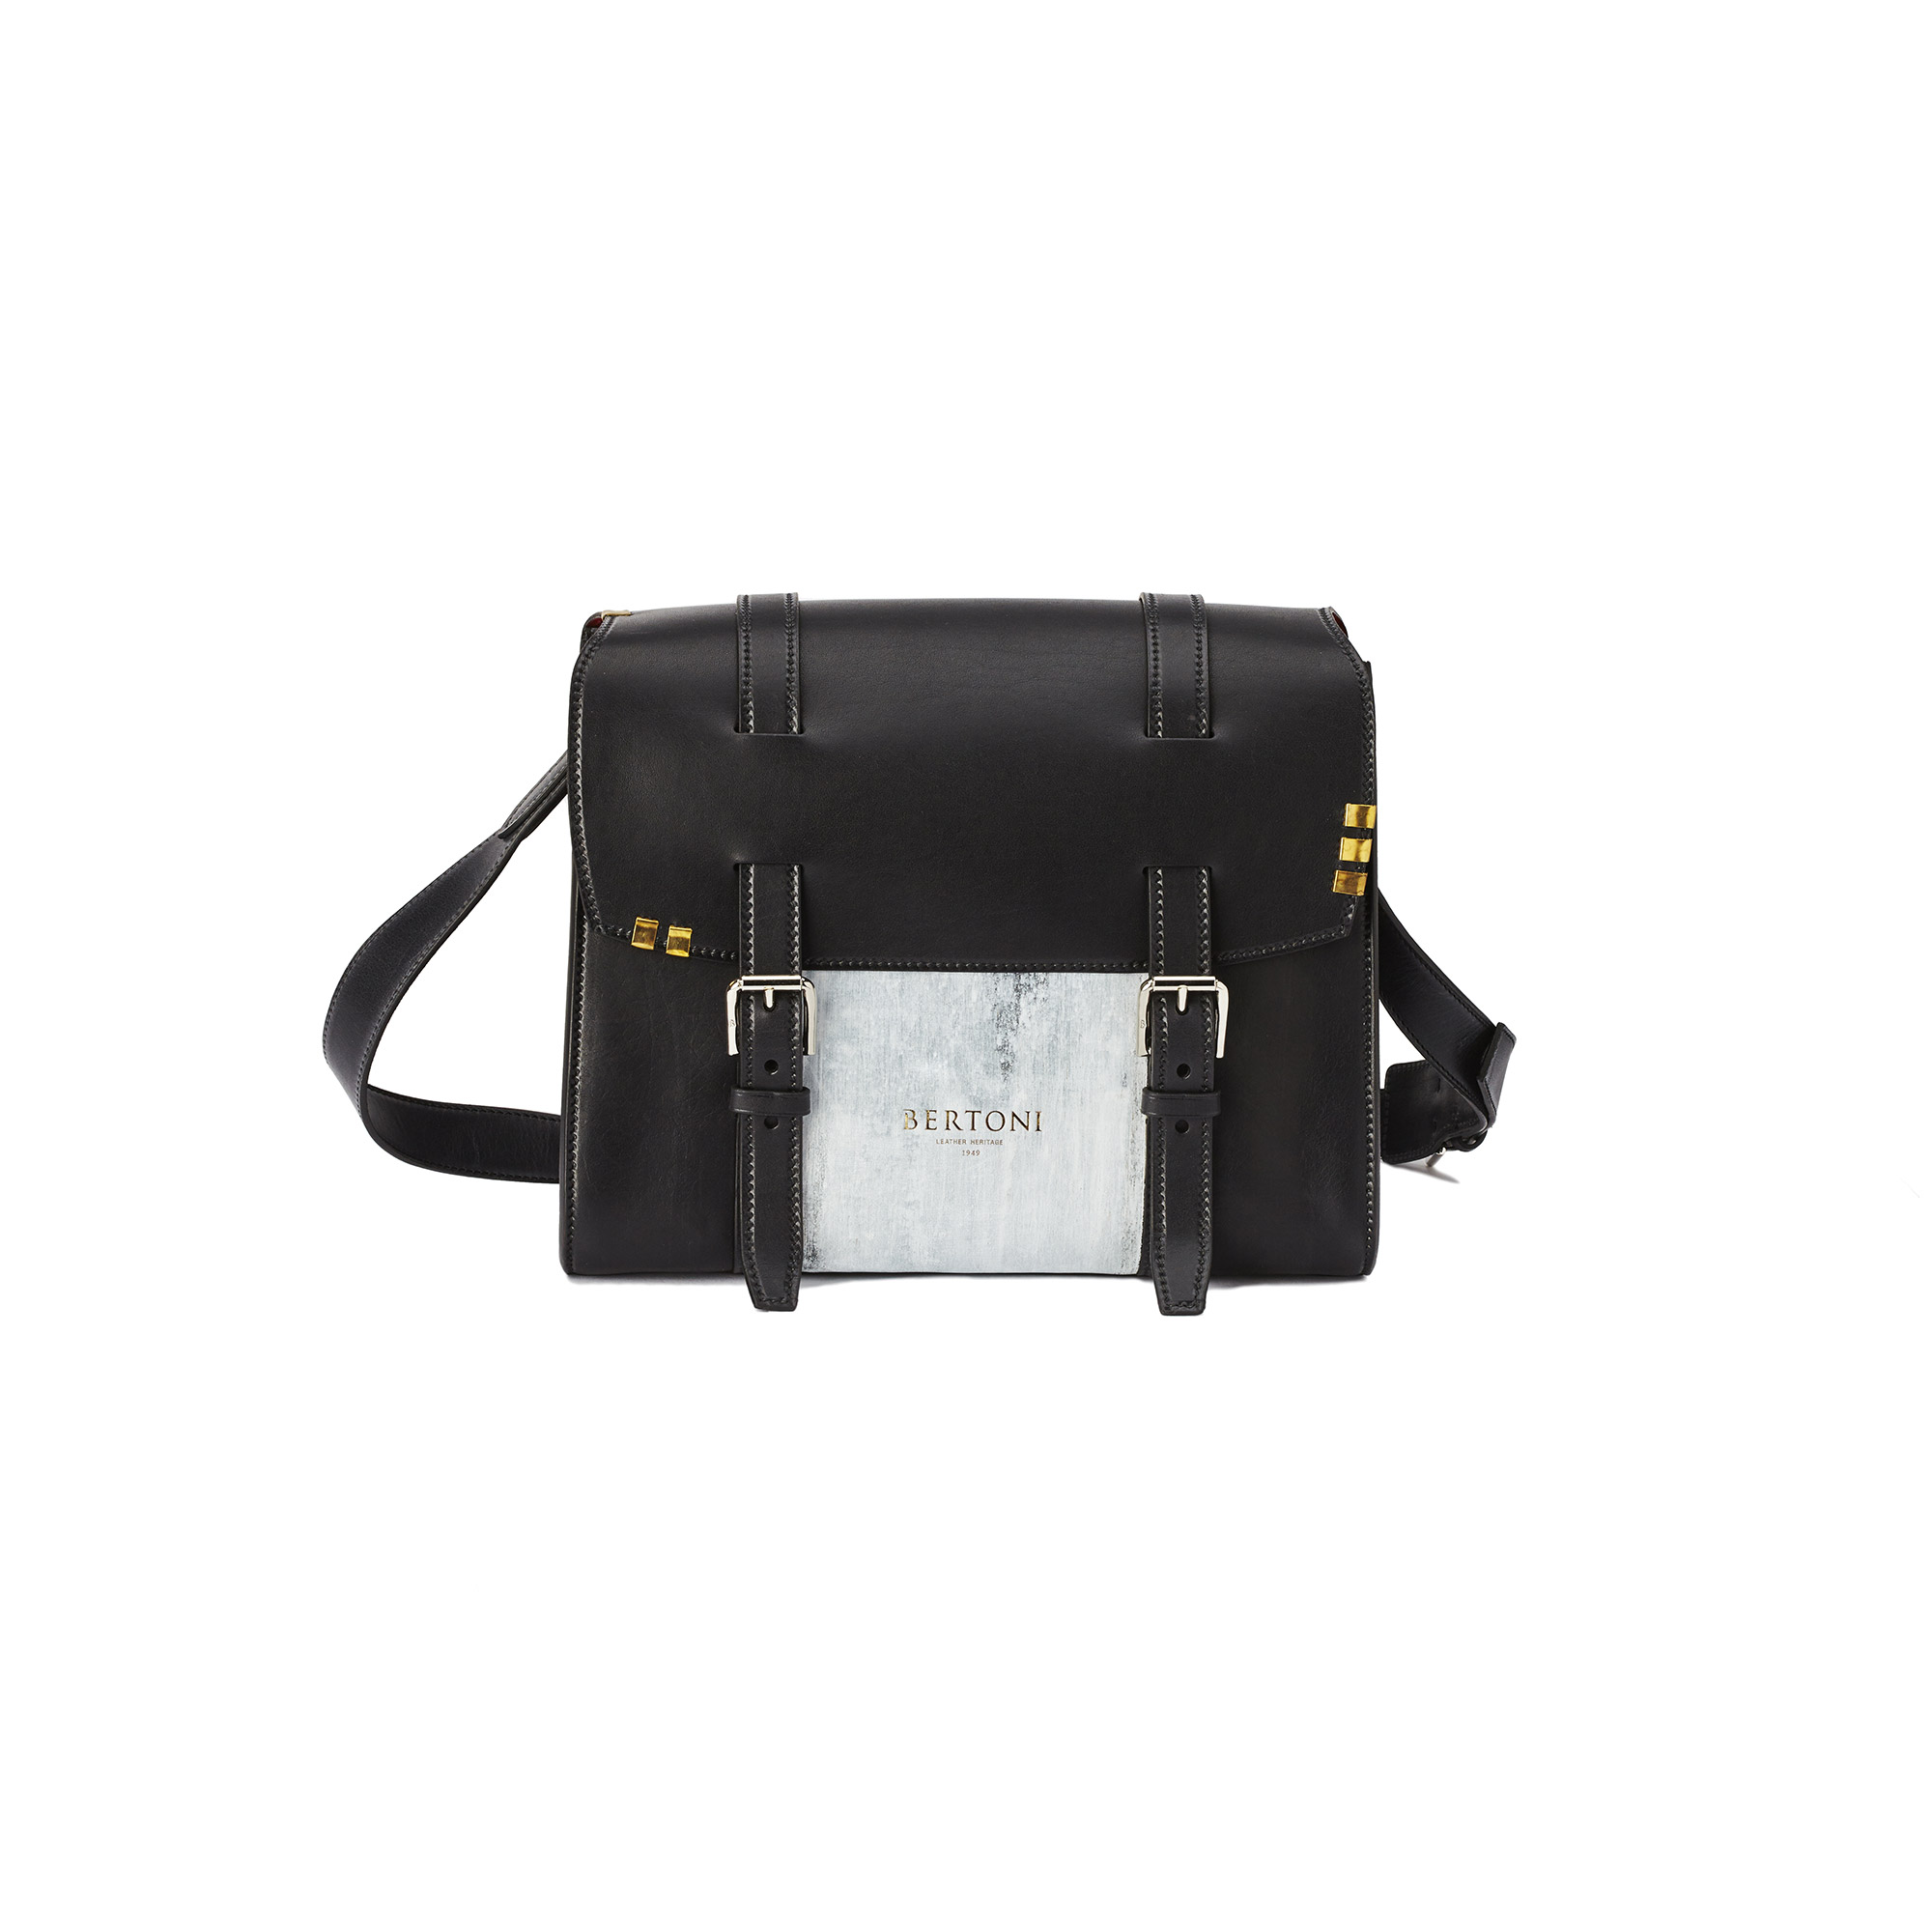 Signature-Messenger-black-rock-calf-bag-Bertoni-1949